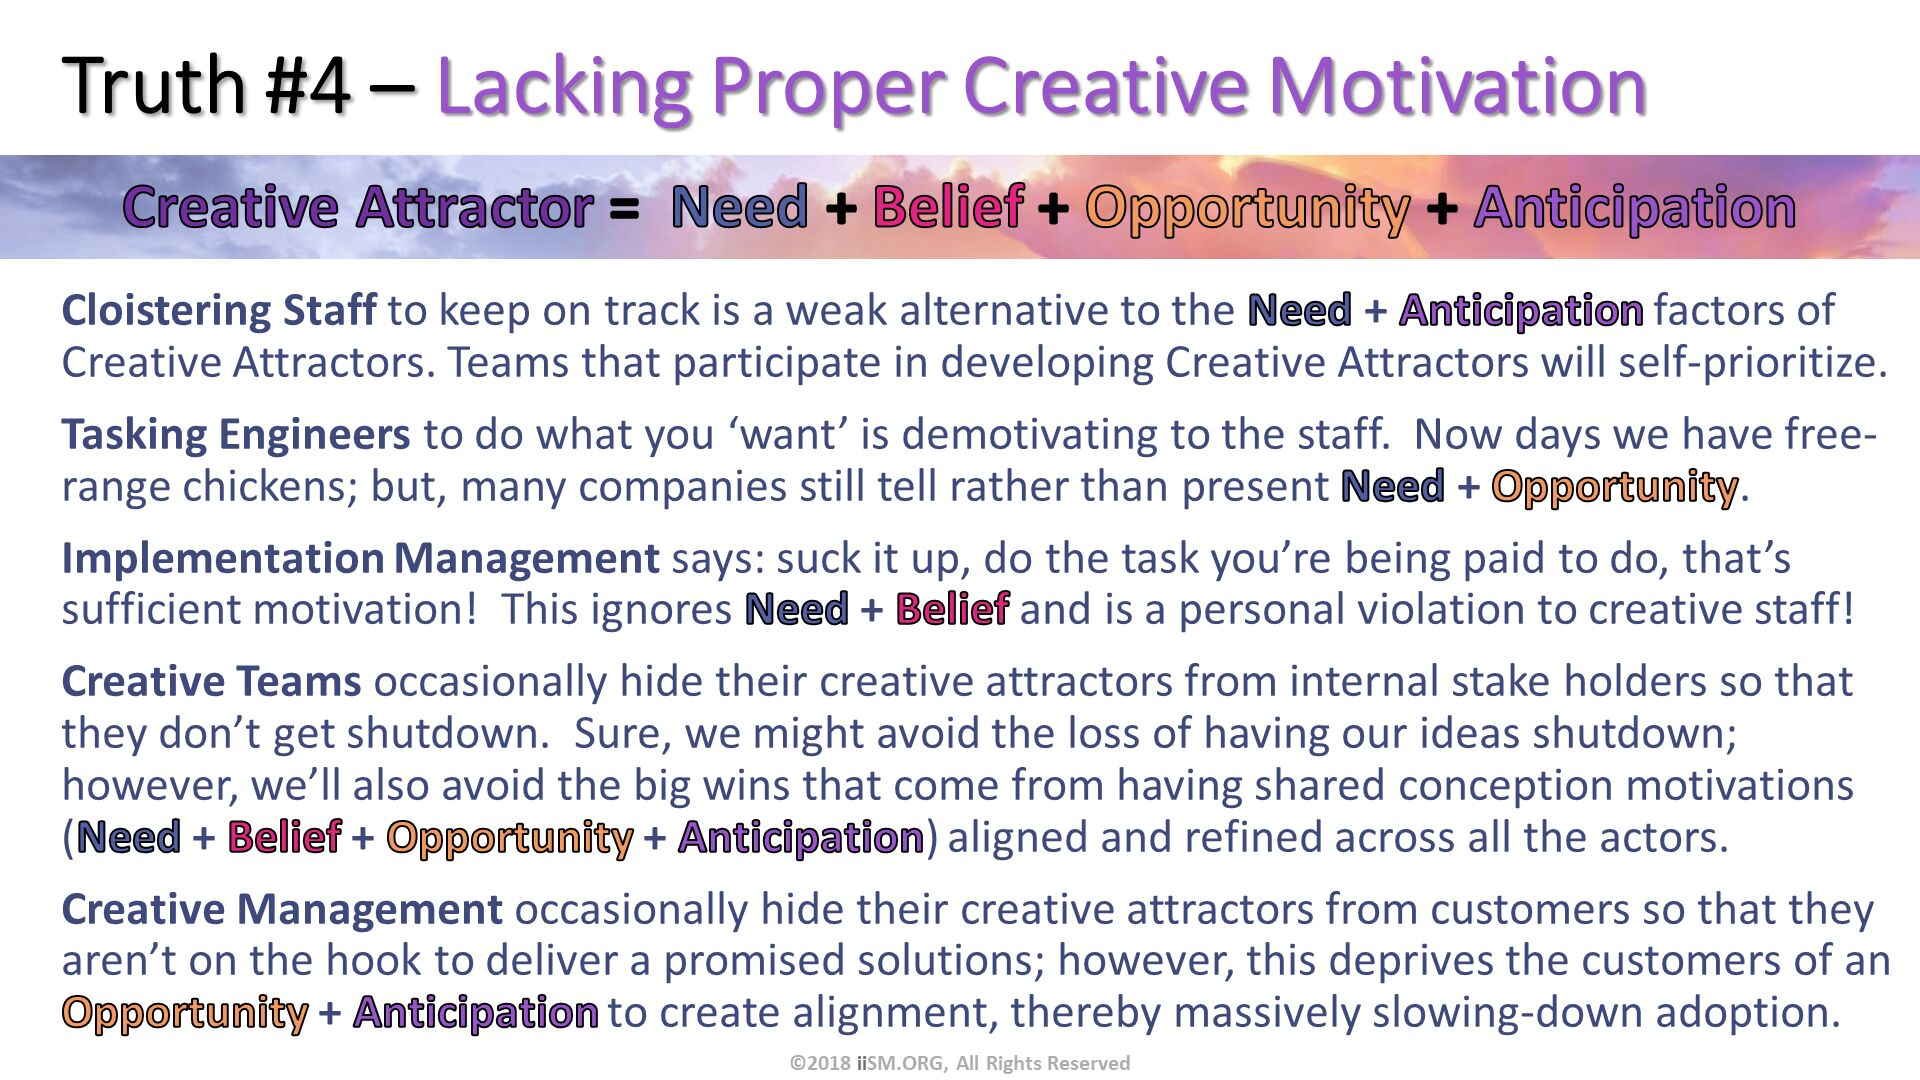 Truth #4 – Lacking Proper Creative Motivation. Cloistering Staff to keep on track is a weak alternative to the Need + Anticipation factors of Creative Attractors. Teams that participate in developing Creative Attractors will self-prioritize. Tasking Engineers to do what you 'want' is demotivating to the staff.  Now days we have free-range chickens; but, many companies still tell rather than present Need + Opportunity. Implementation Management says: suck it up, do the task you're being paid to do, that's sufficient motivation!  This ignores Need + Belief and is a personal violation to creative staff! Creative Teams occasionally hide their creative attractors from internal stake holders so that they don't get shutdown.  Sure, we might avoid the loss of having our ideas shutdown; however, we'll also avoid the big wins that come from having shared conception motivations (Need + Belief + Opportunity + Anticipation) aligned and refined across all the actors.   Creative Management occasionally hide their creative attractors from customers so that they aren't on the hook to deliver a promised solutions; however, this deprives the customers of an Opportunity + Anticipation to create alignment, thereby massively slowing-down adoption. . ©2018 iiSM.ORG, All Rights Reserved.